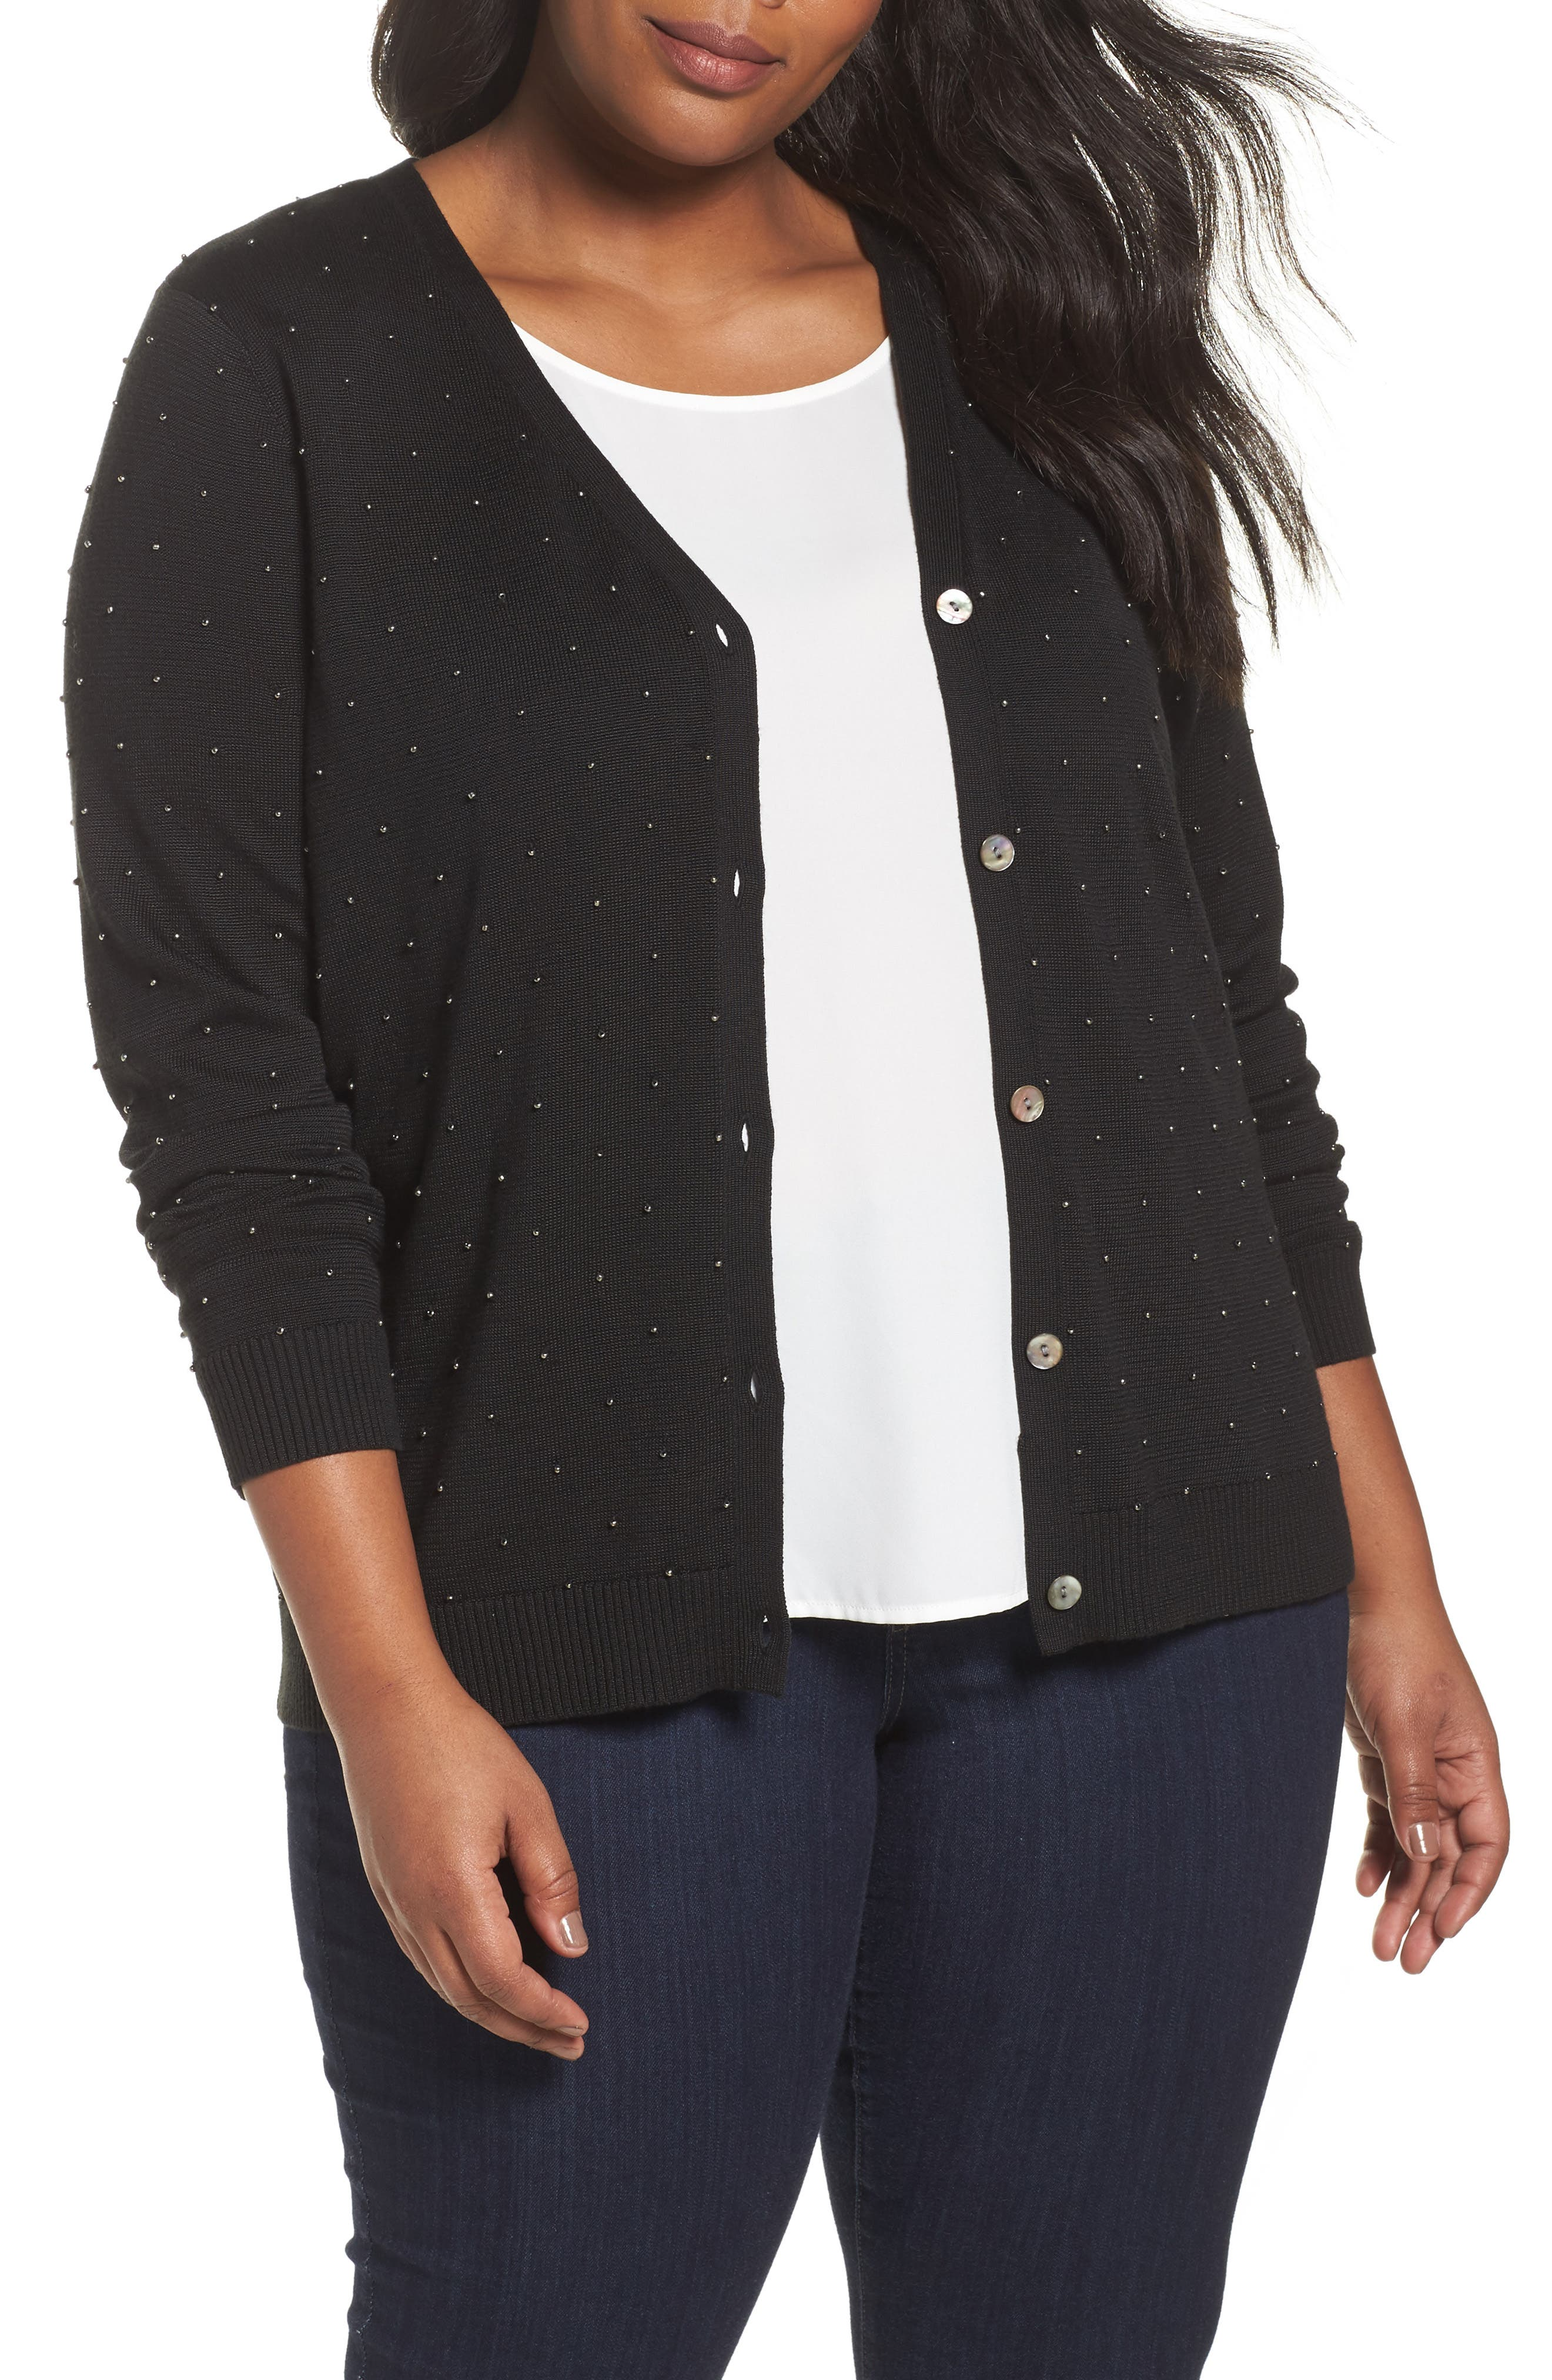 Alternate Image 1 Selected - Foxcroft Ryleigh Beaded Cardigan (Plus Size)